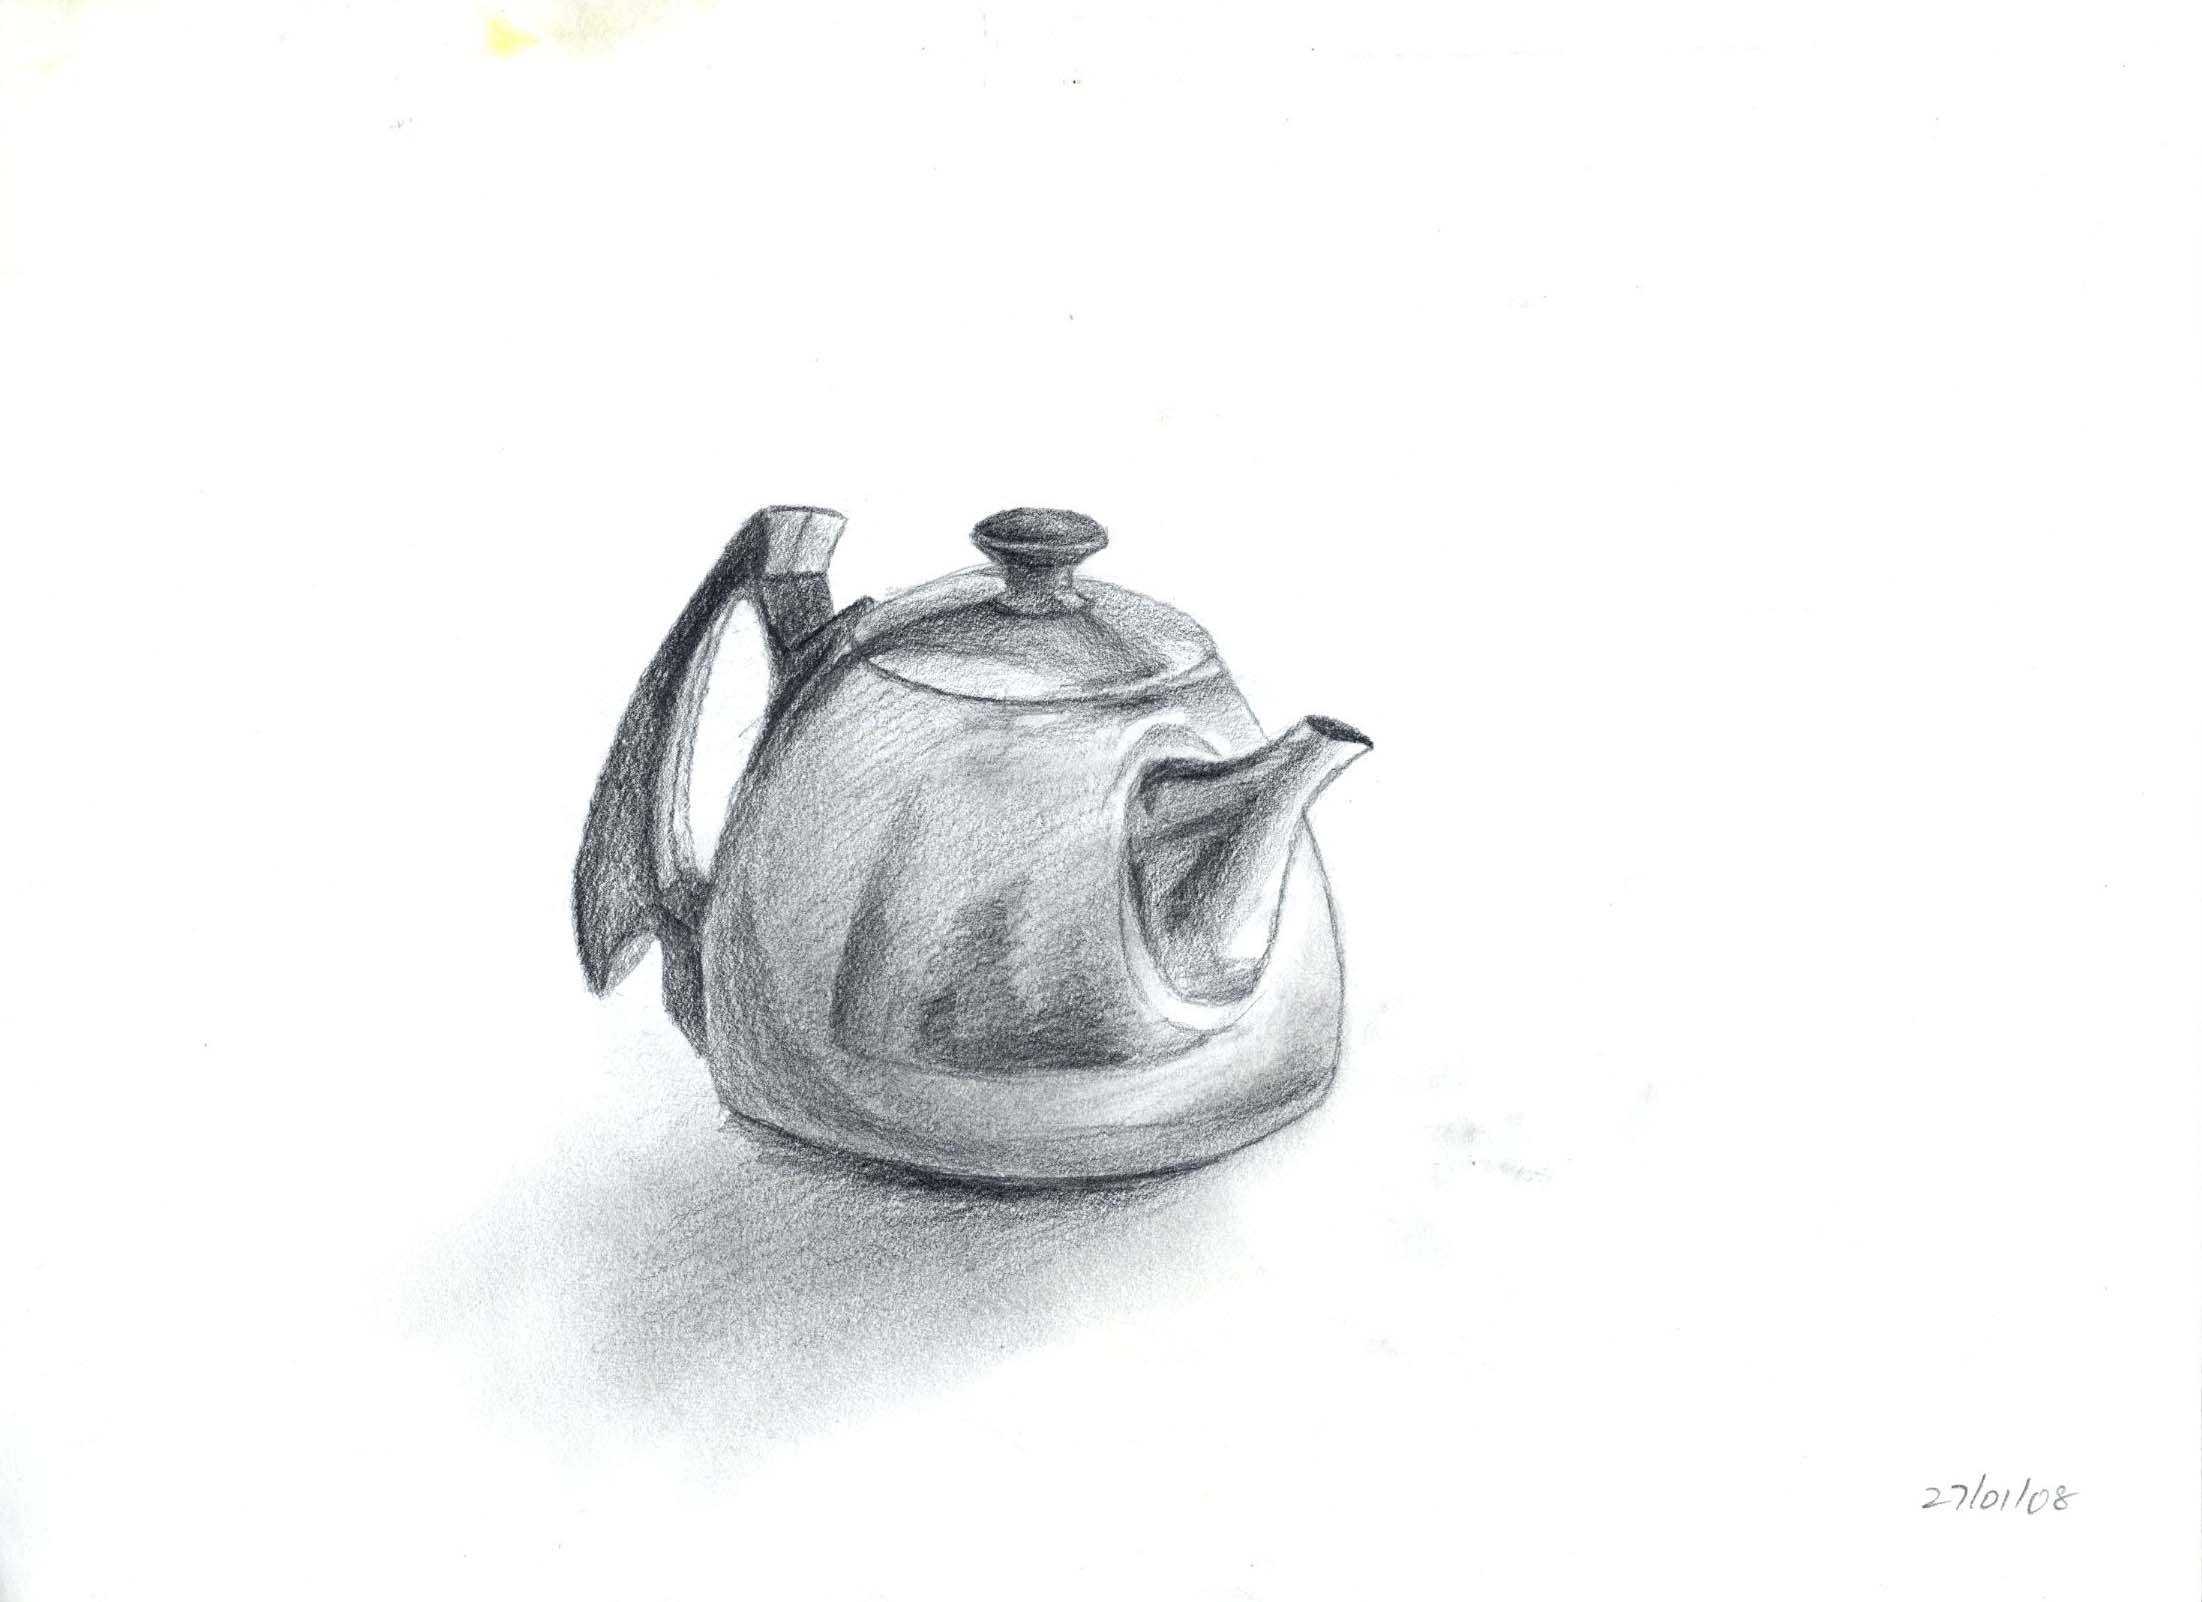 Drawn still life kettle Title: Juhpalang space Kettle My